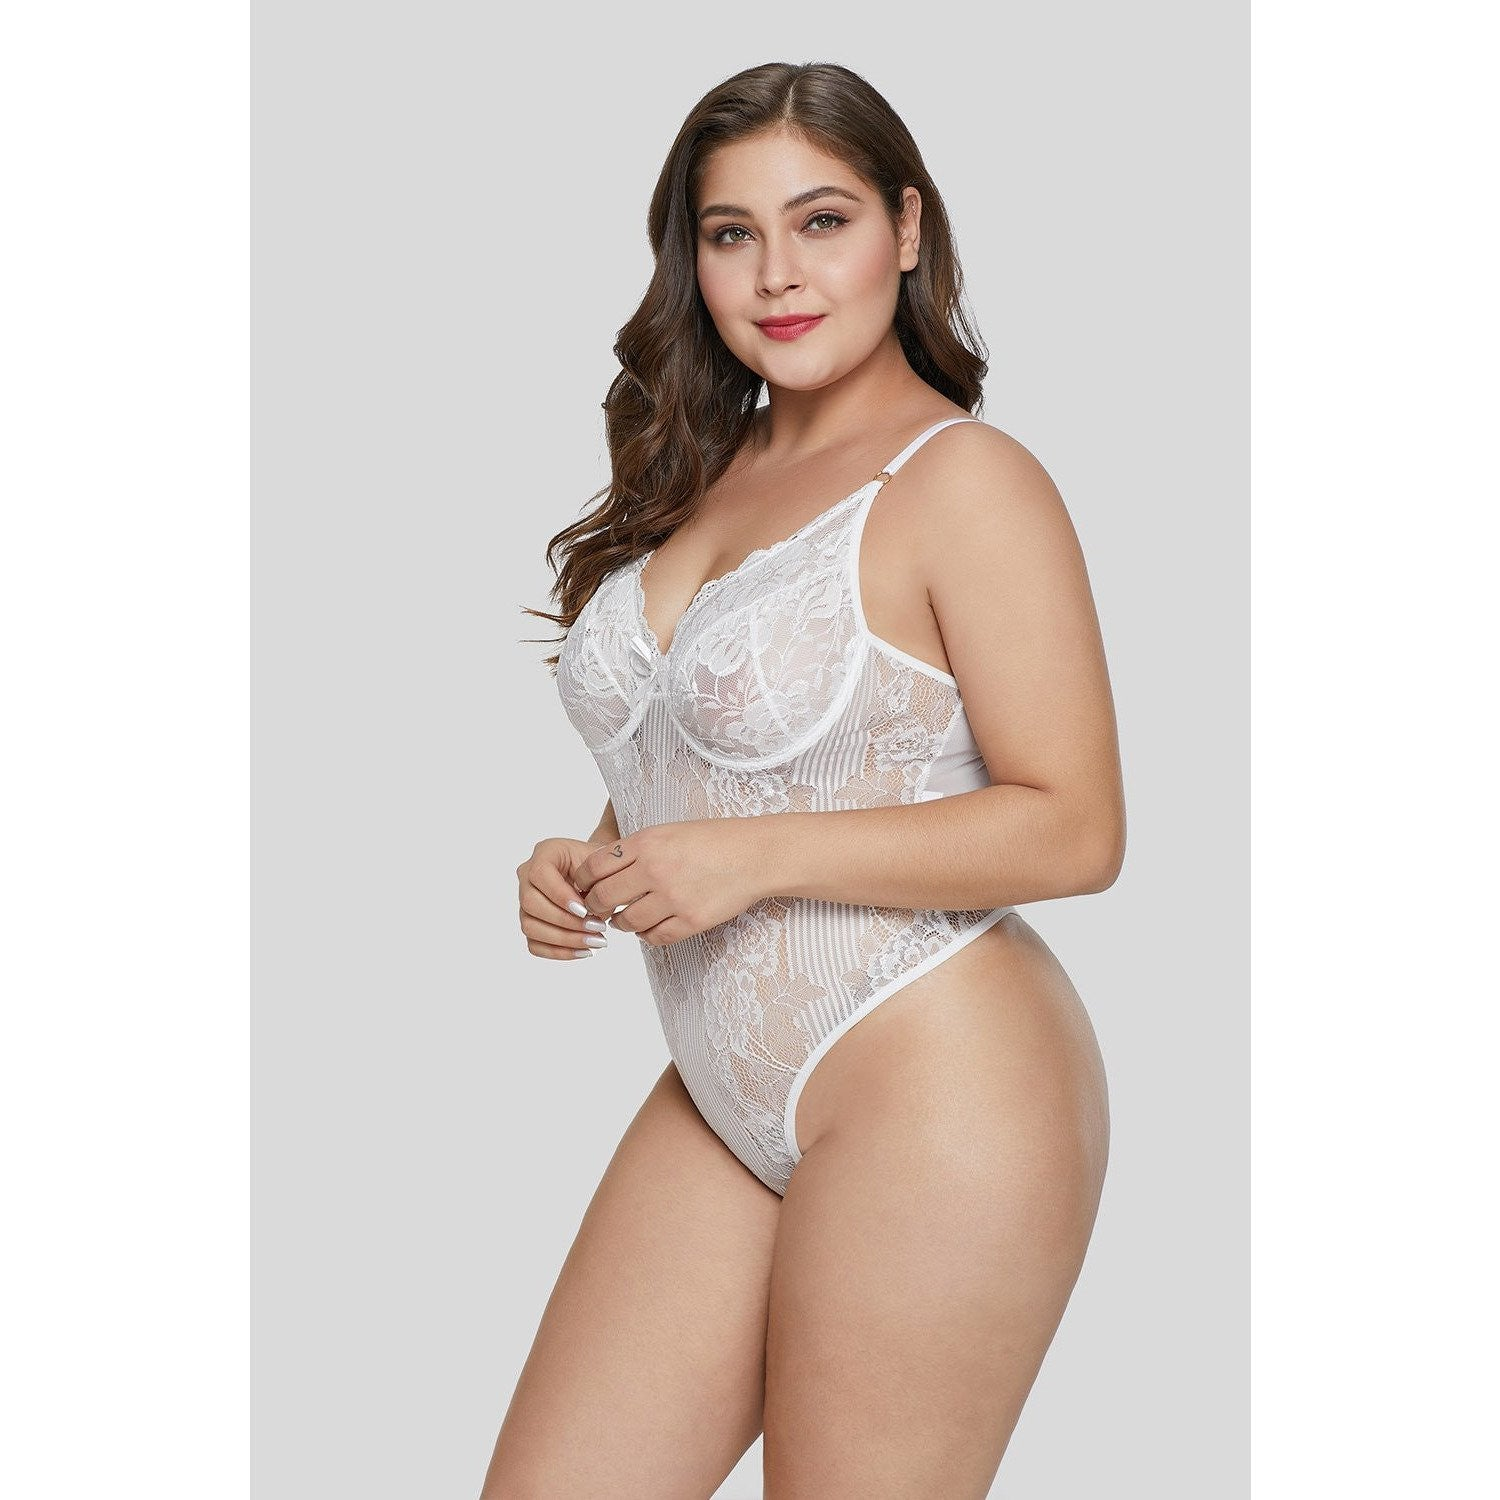 1b01f8fc4 KELLIPS White Plus Size Teddy Lingerie